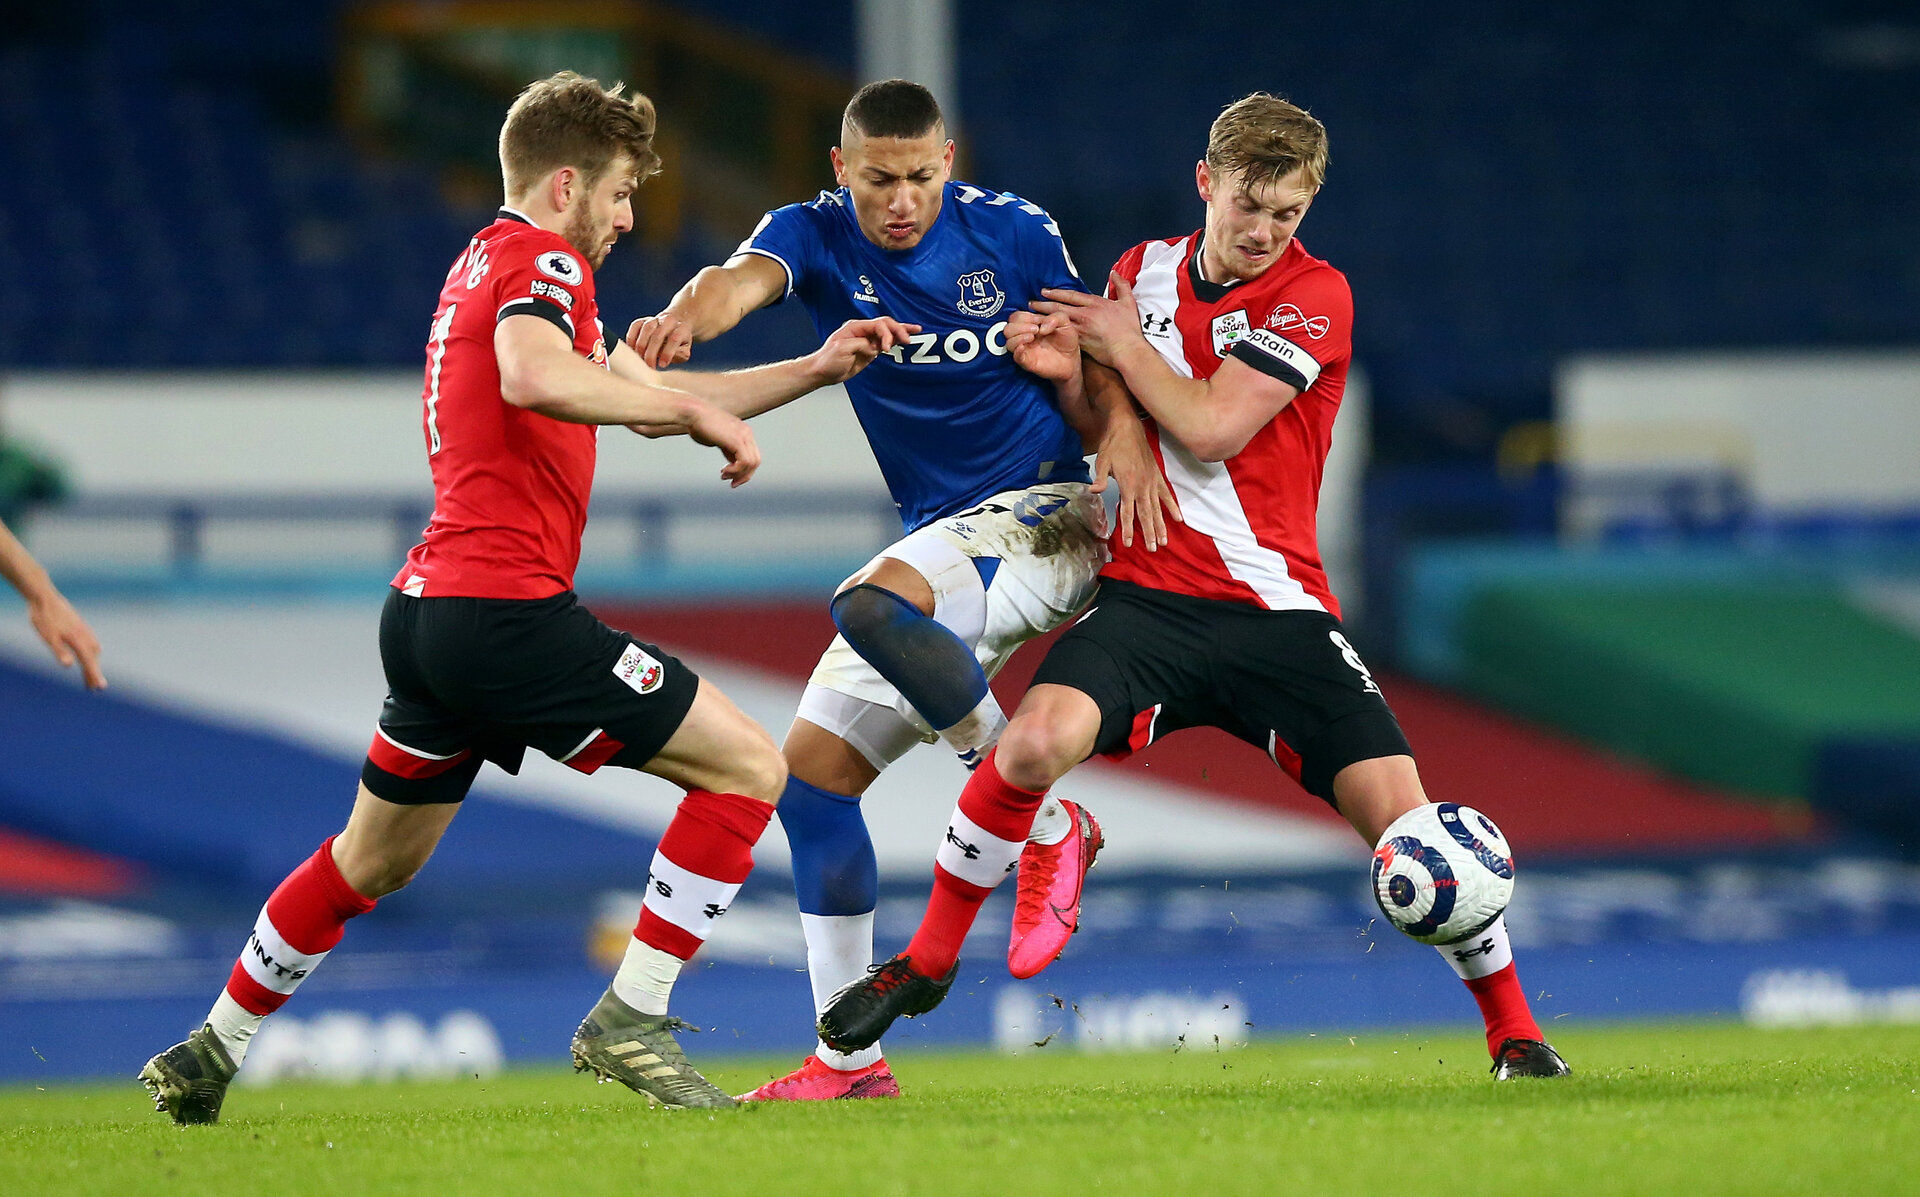 LIVERPOOL, ENGLAND - MARCH 01: Stuart Armstrong(L) and James Ward-Prowse(R) of Southampton double up on Richarlison of Everton during the Premier League match between Everton and Southampton at Goodison Park on March 01, 2021 in Liverpool, England. Sporting stadiums around the UK remain under strict restrictions due to the Coronavirus Pandemic as Government social distancing laws prohibit fans inside venues resulting in games being played behind closed doors. (Photo by Matt Watson/Southampton FC via Getty Images)